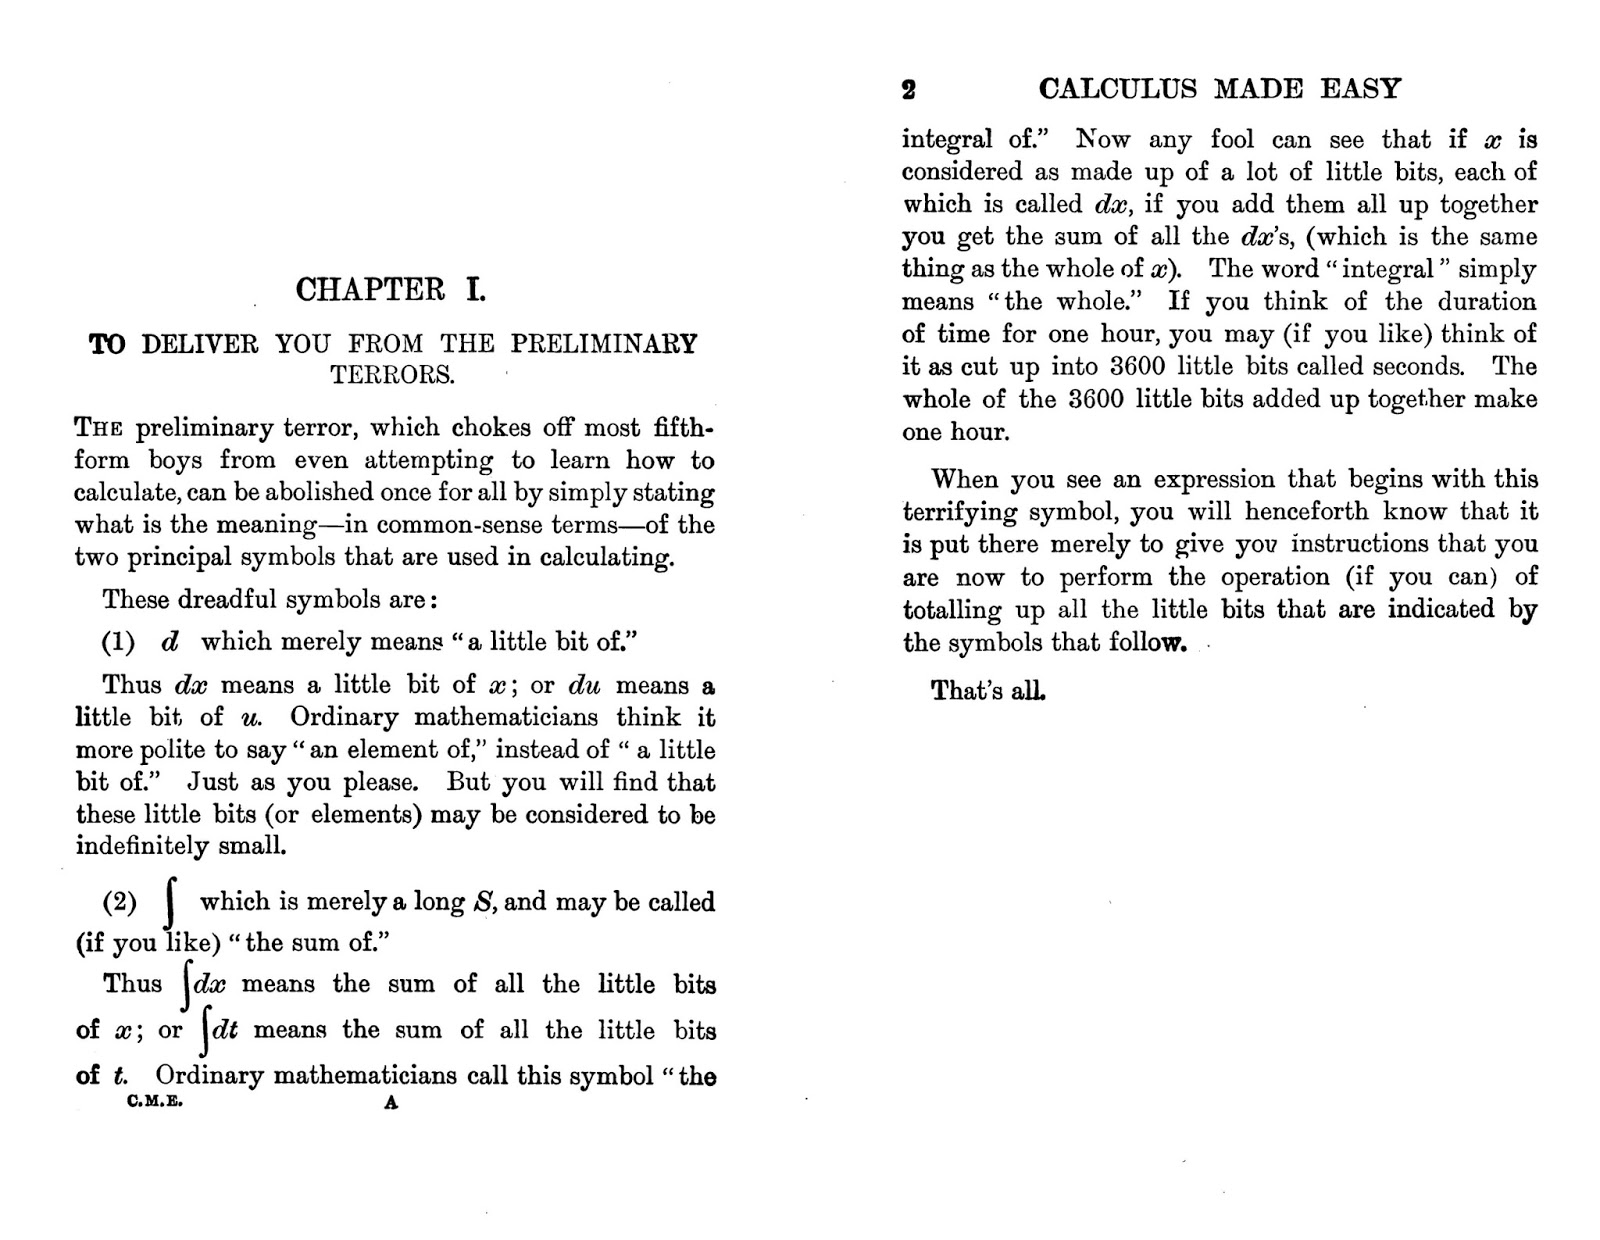 Data Deluge Calculus Made Easy 1914